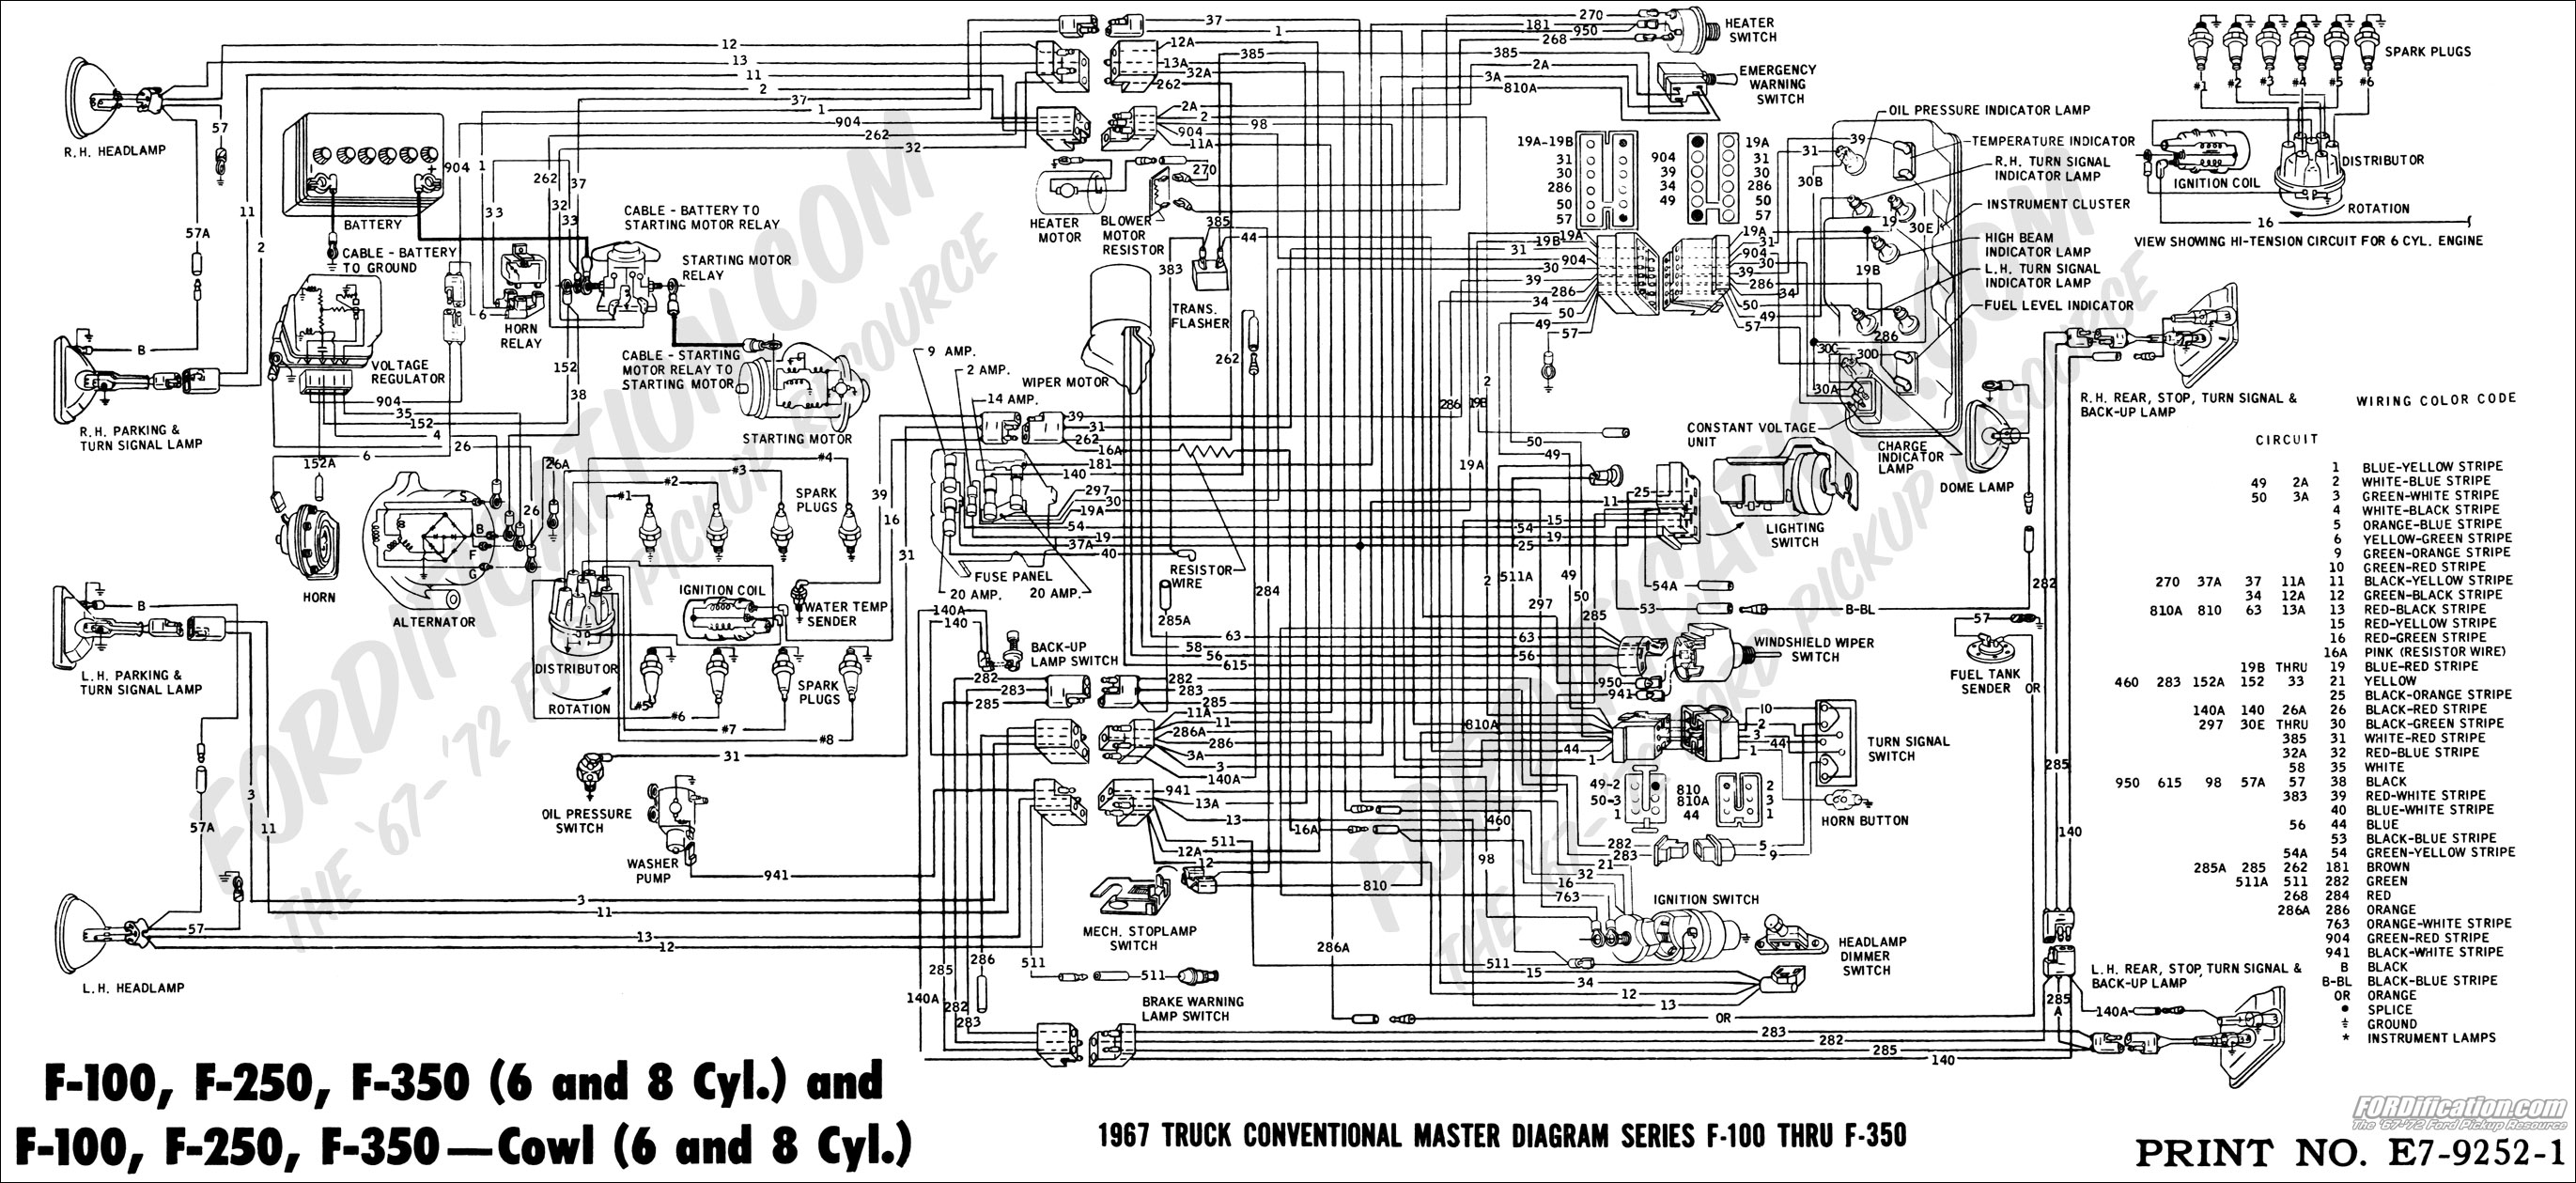 67masterdiagram ford truck technical drawings and schematics section h wiring 1963 Ford Econoline Truck Diagram at soozxer.org